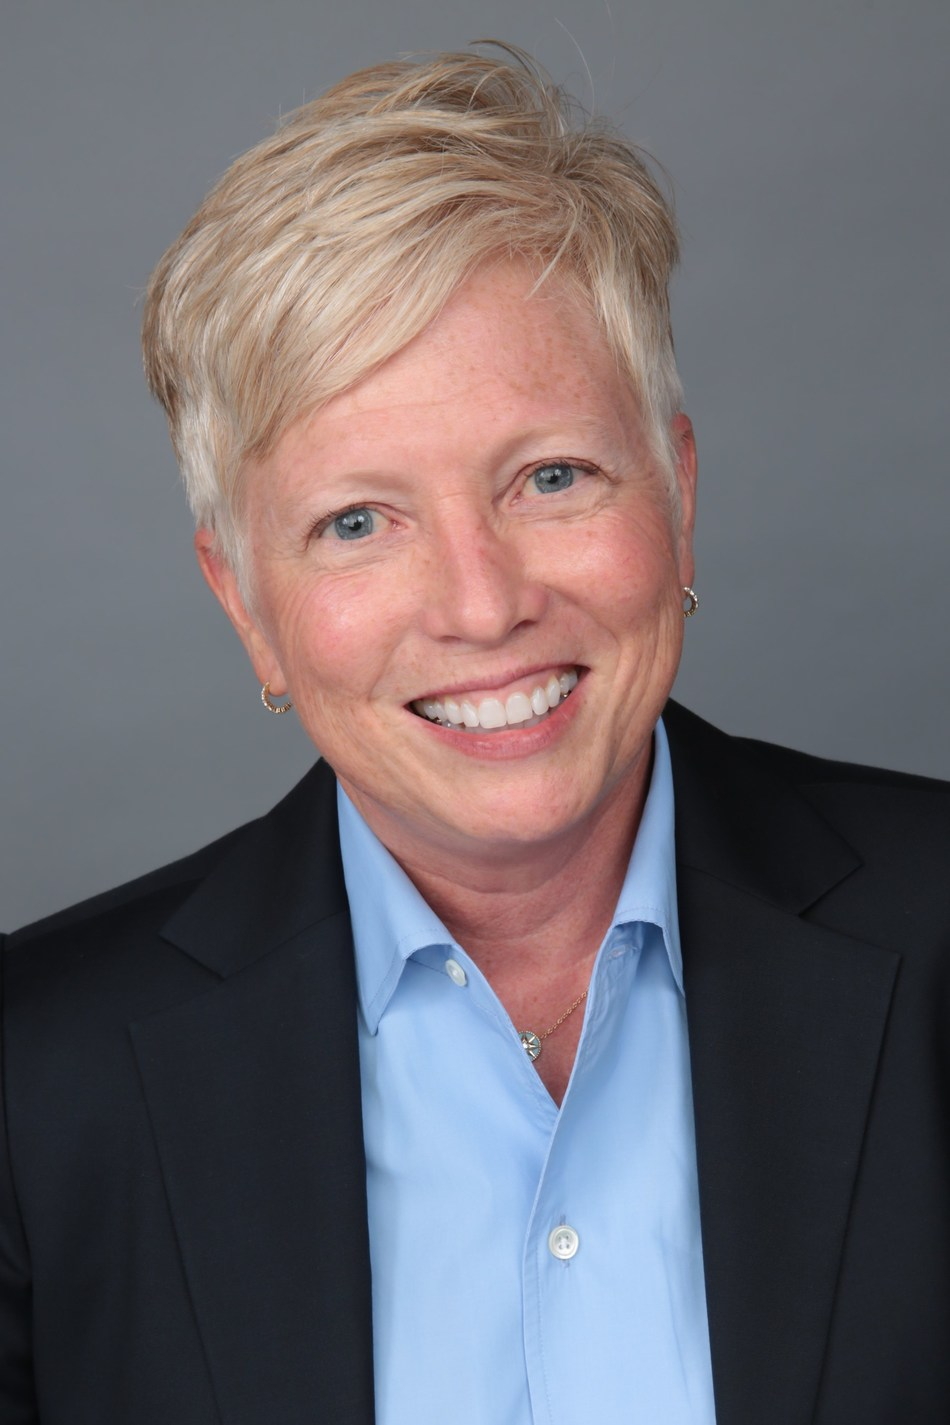 Annette Clayton, a proven business leader with vast experience in energy, sustainability and electrification, joins the board of directors of Qmerit, a leader in green energy transformation.